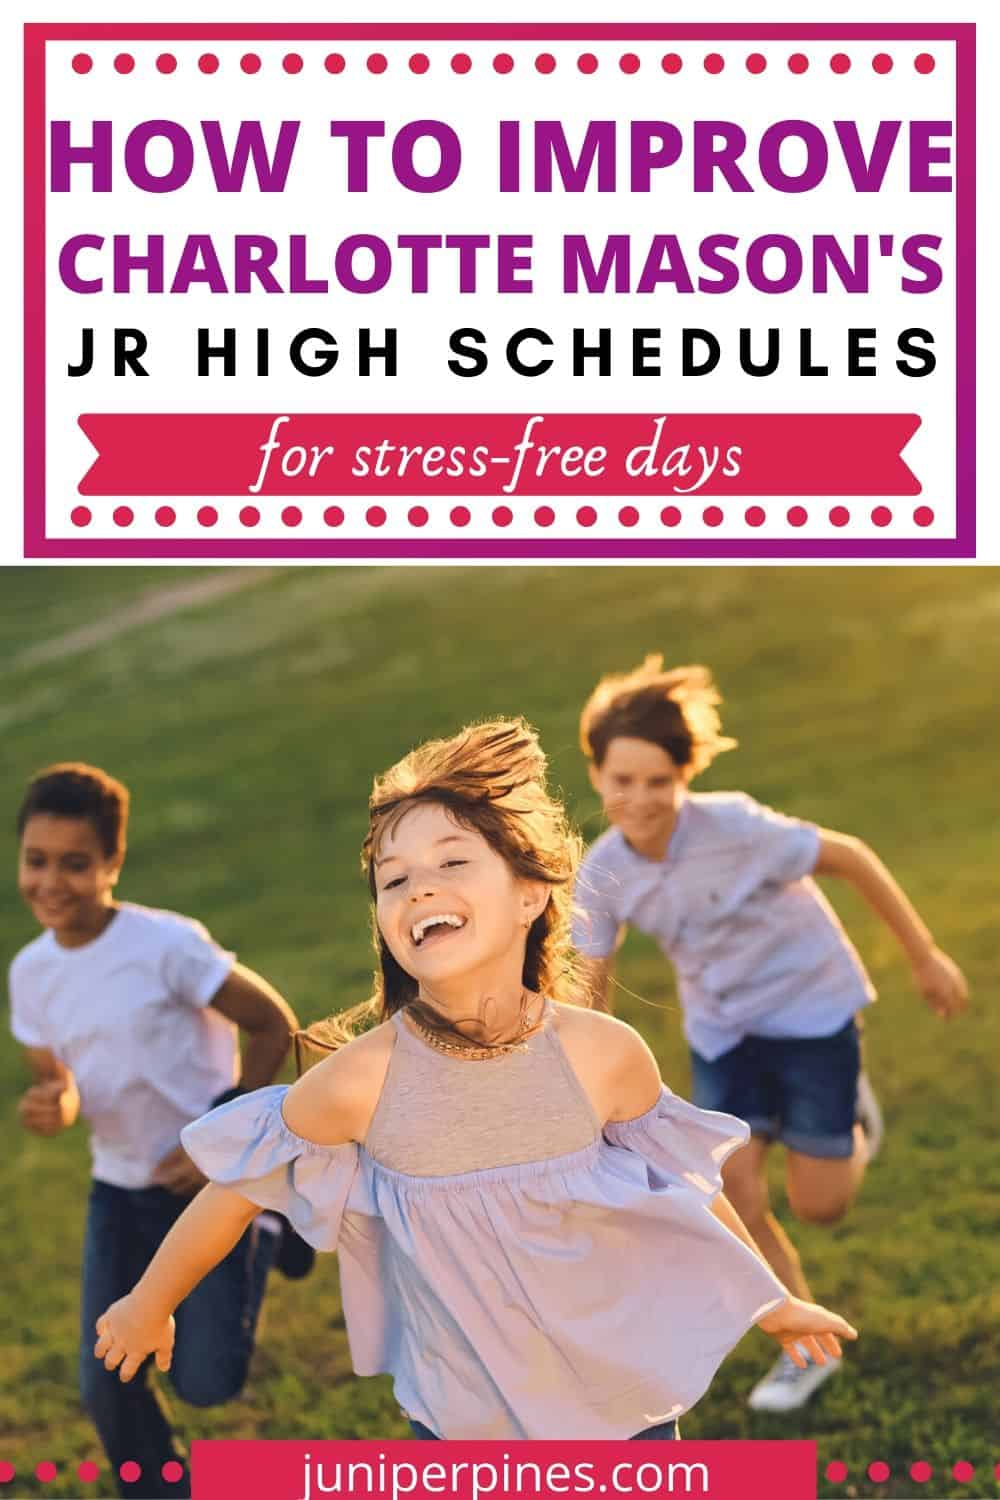 pinterest pin How to improve Charlotte Mason's jr high schedules for stress free days